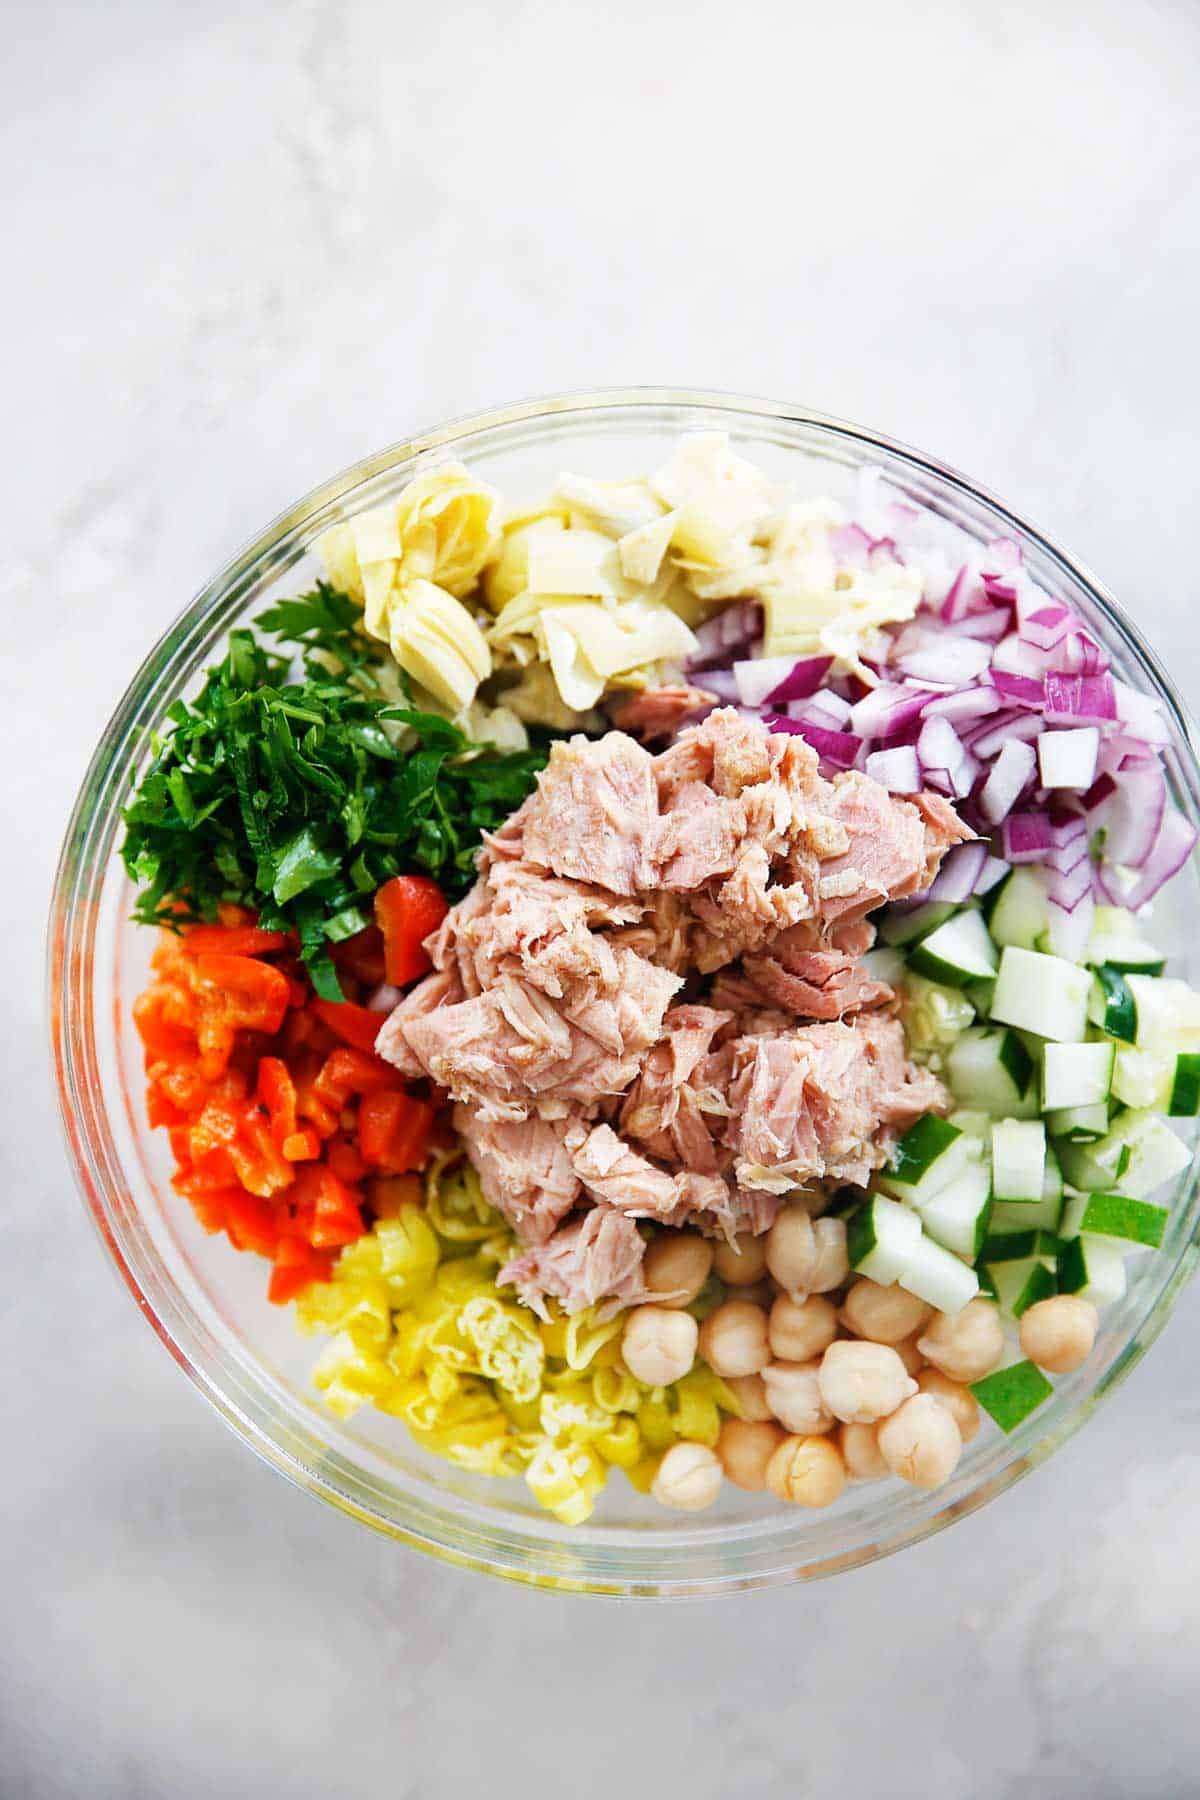 Mediterranean Tuna Salad with No Mayo - Lexi's Clean Kitchen